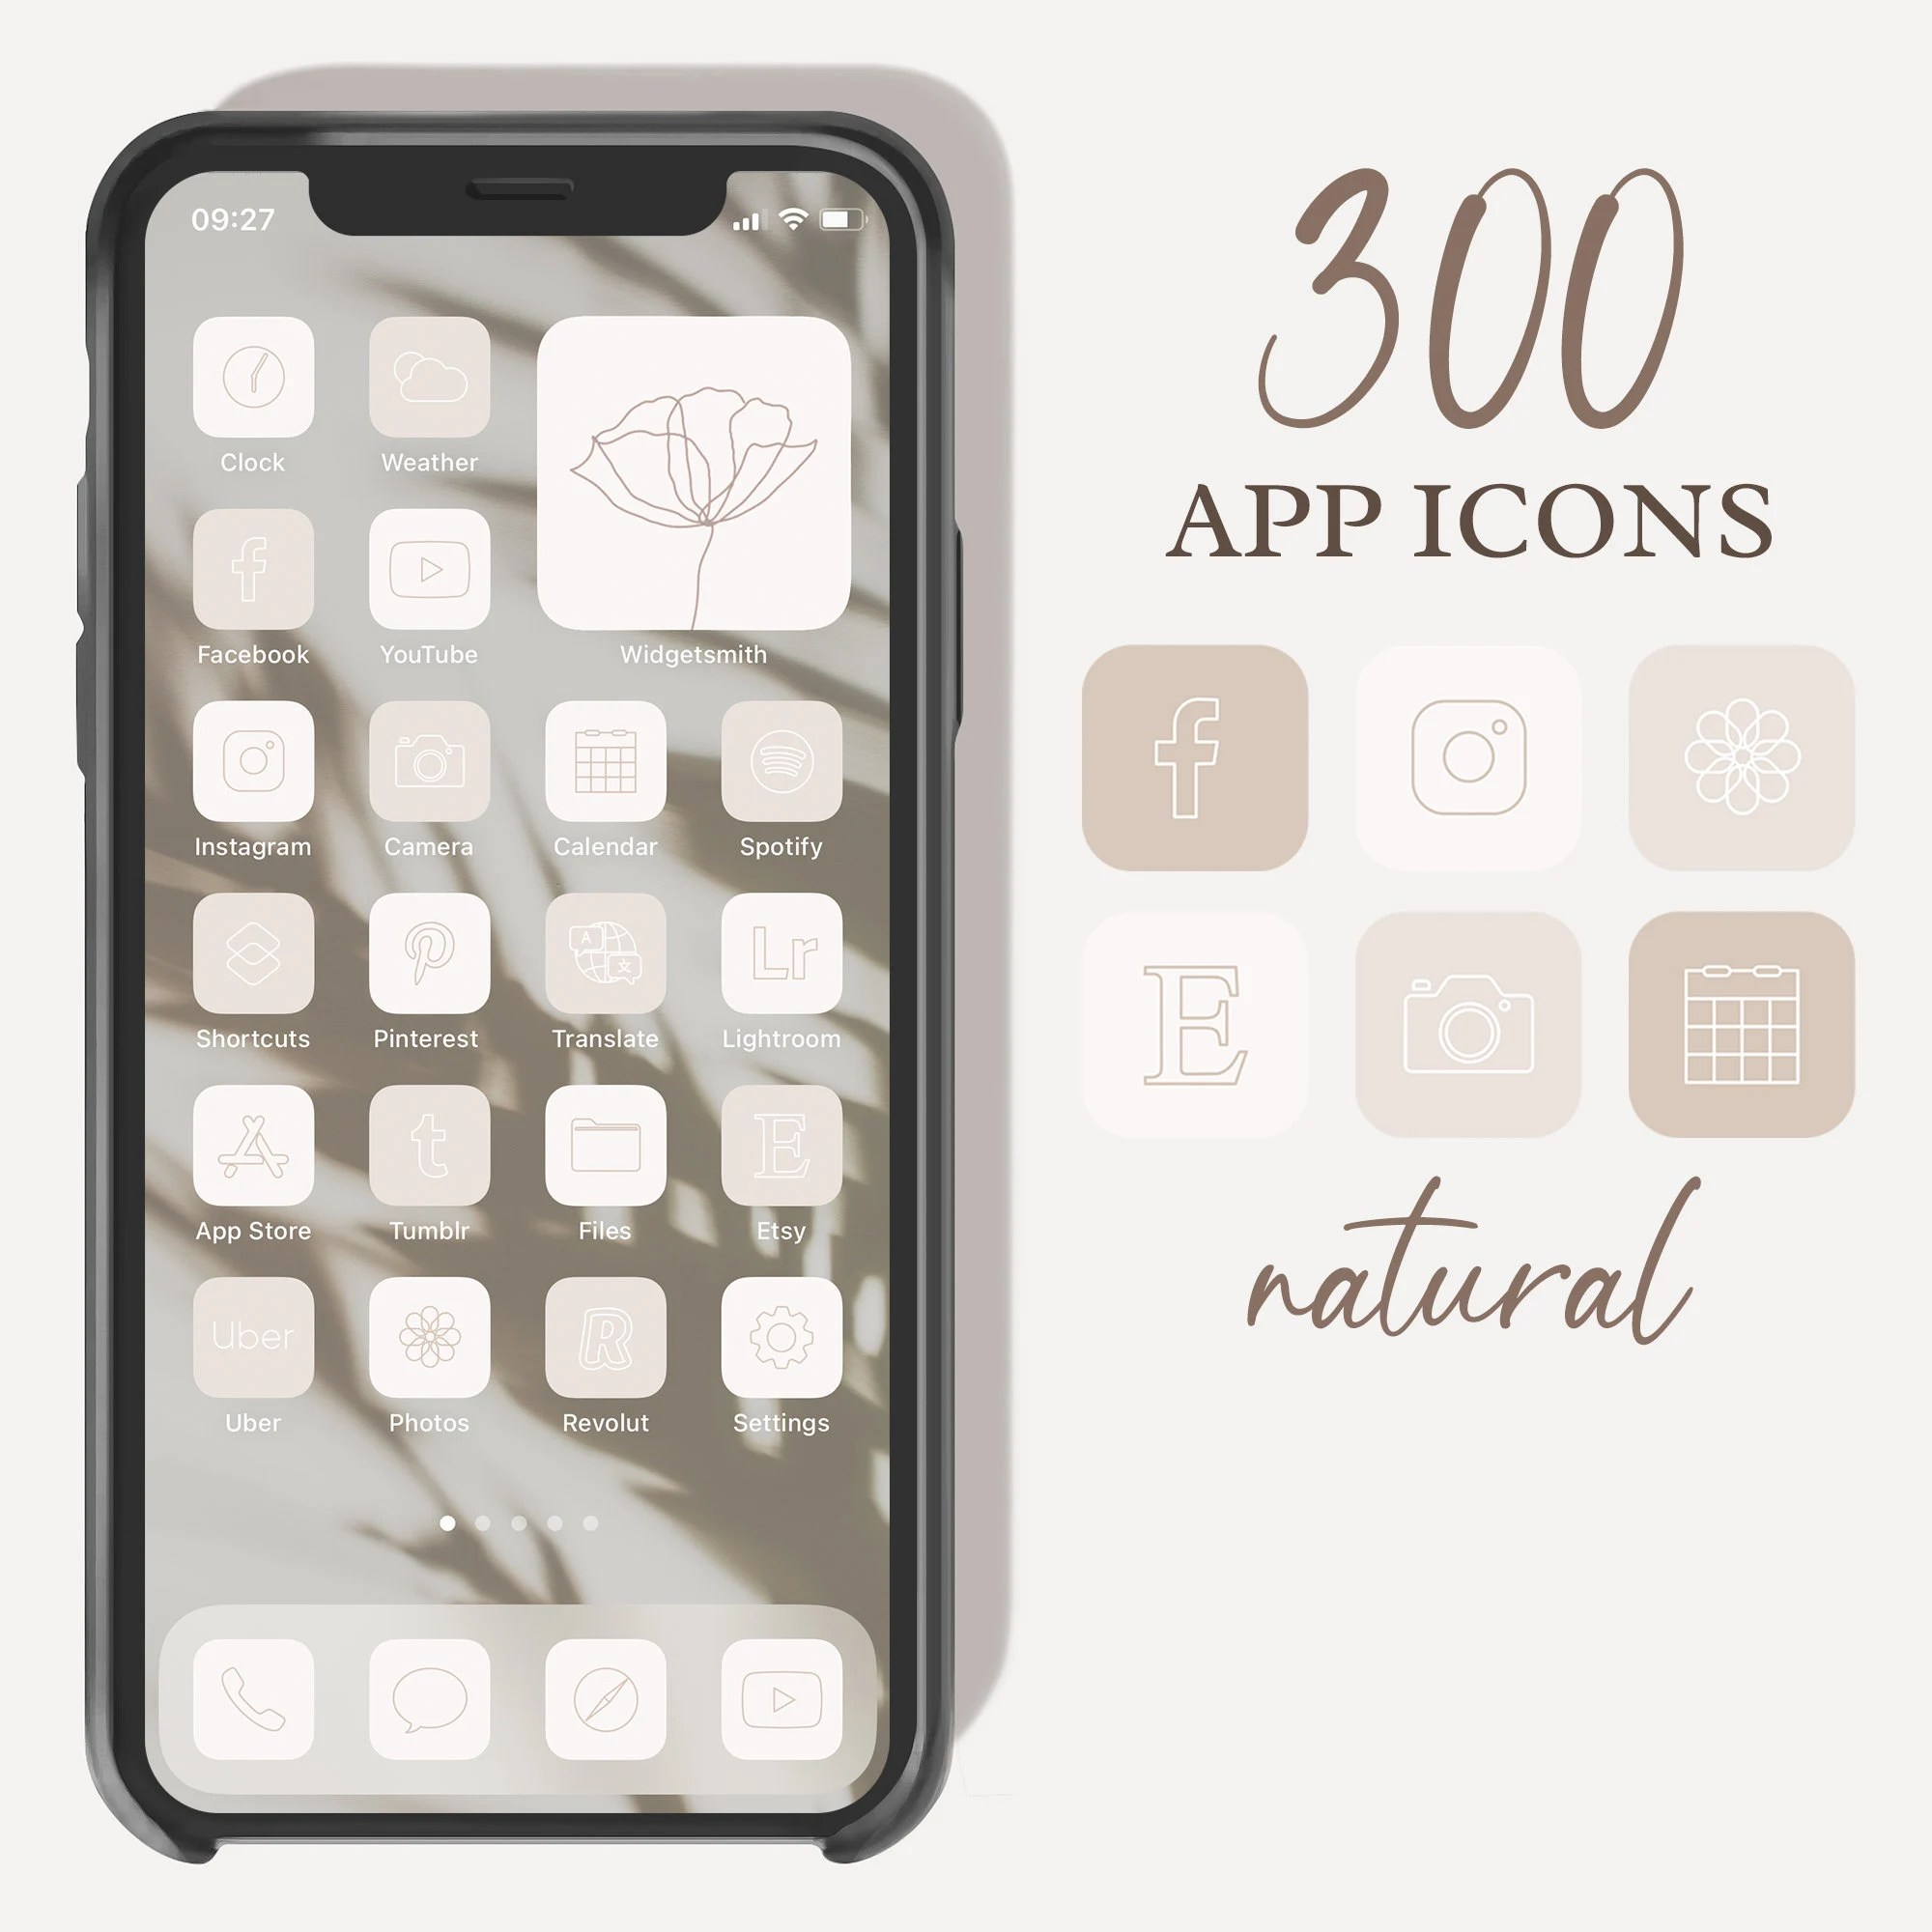 After all, there are so many options. Neutral Beige Aesthetic Boho iPhone iOS 14 App Icons ...